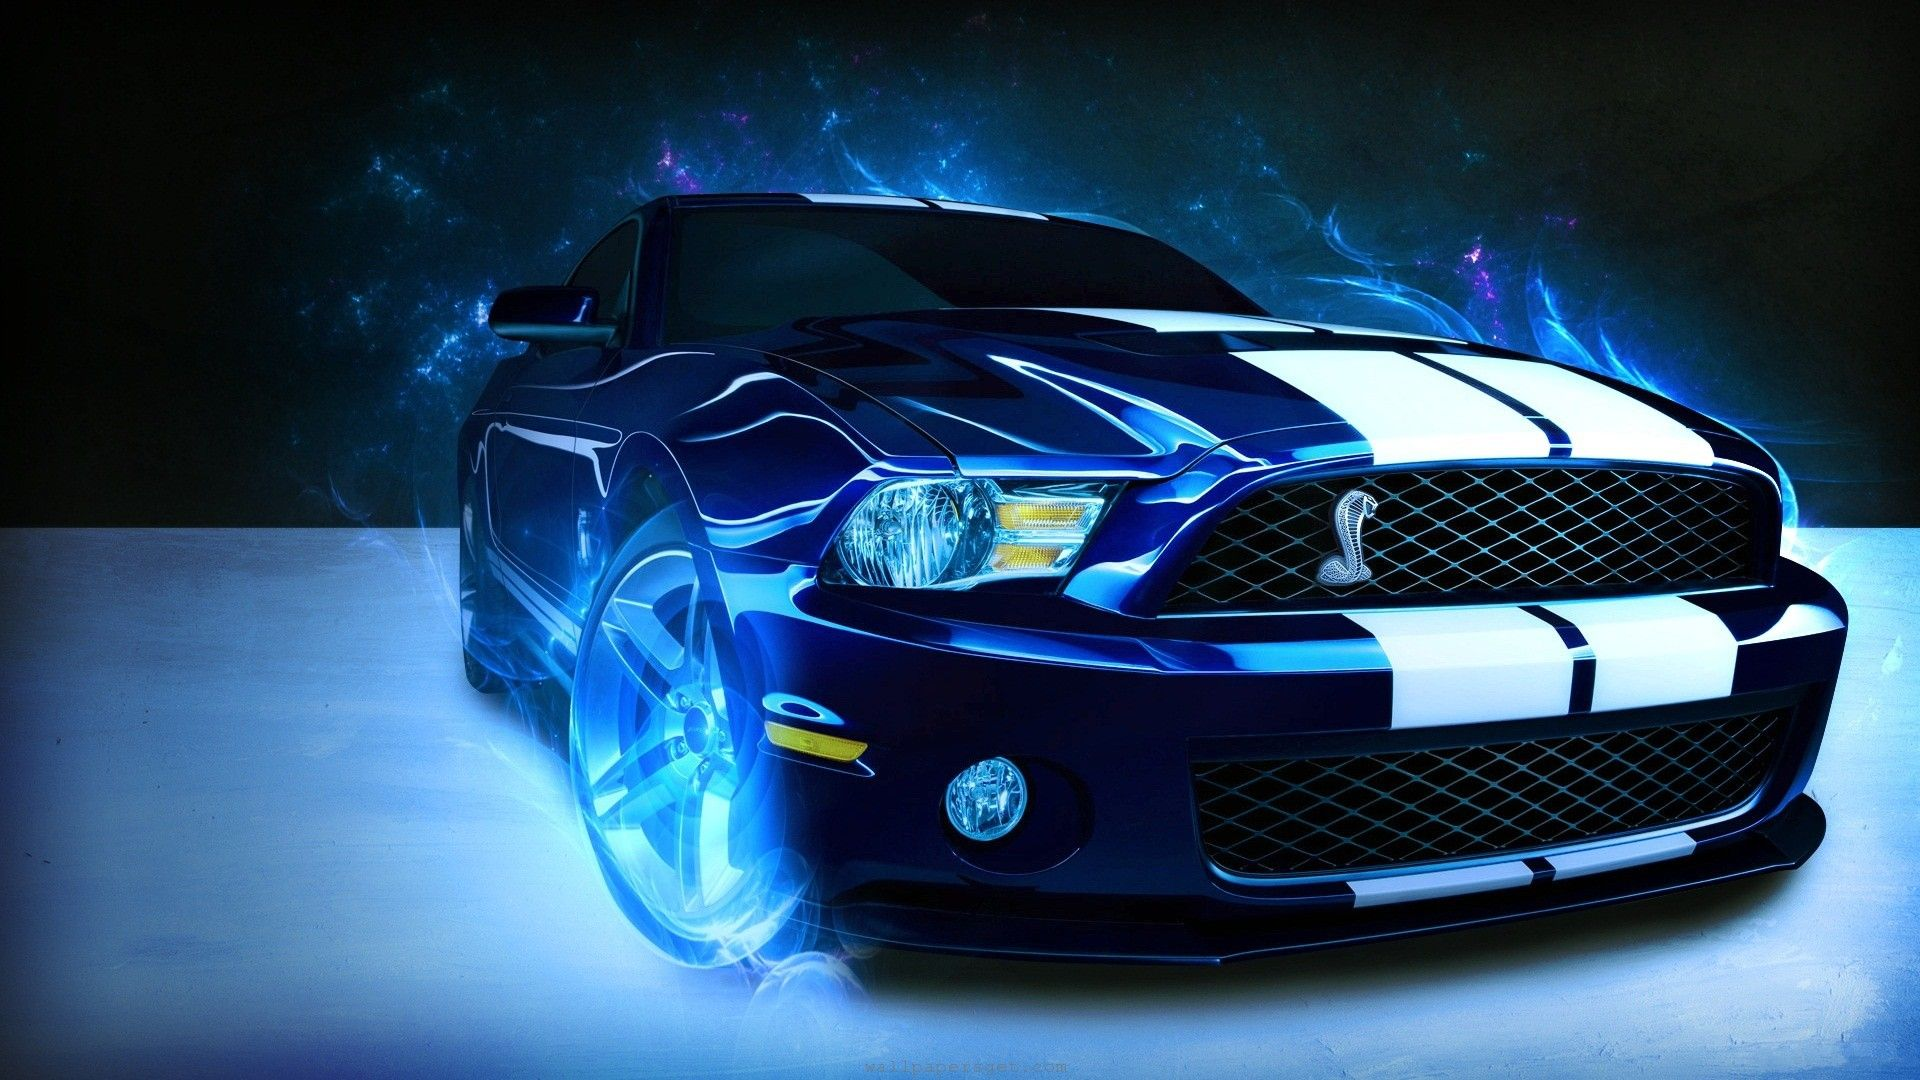 Amazing Stylish And Expensive Racing Cars Hd Wallpapers: Car Wallpapers Mustang HD